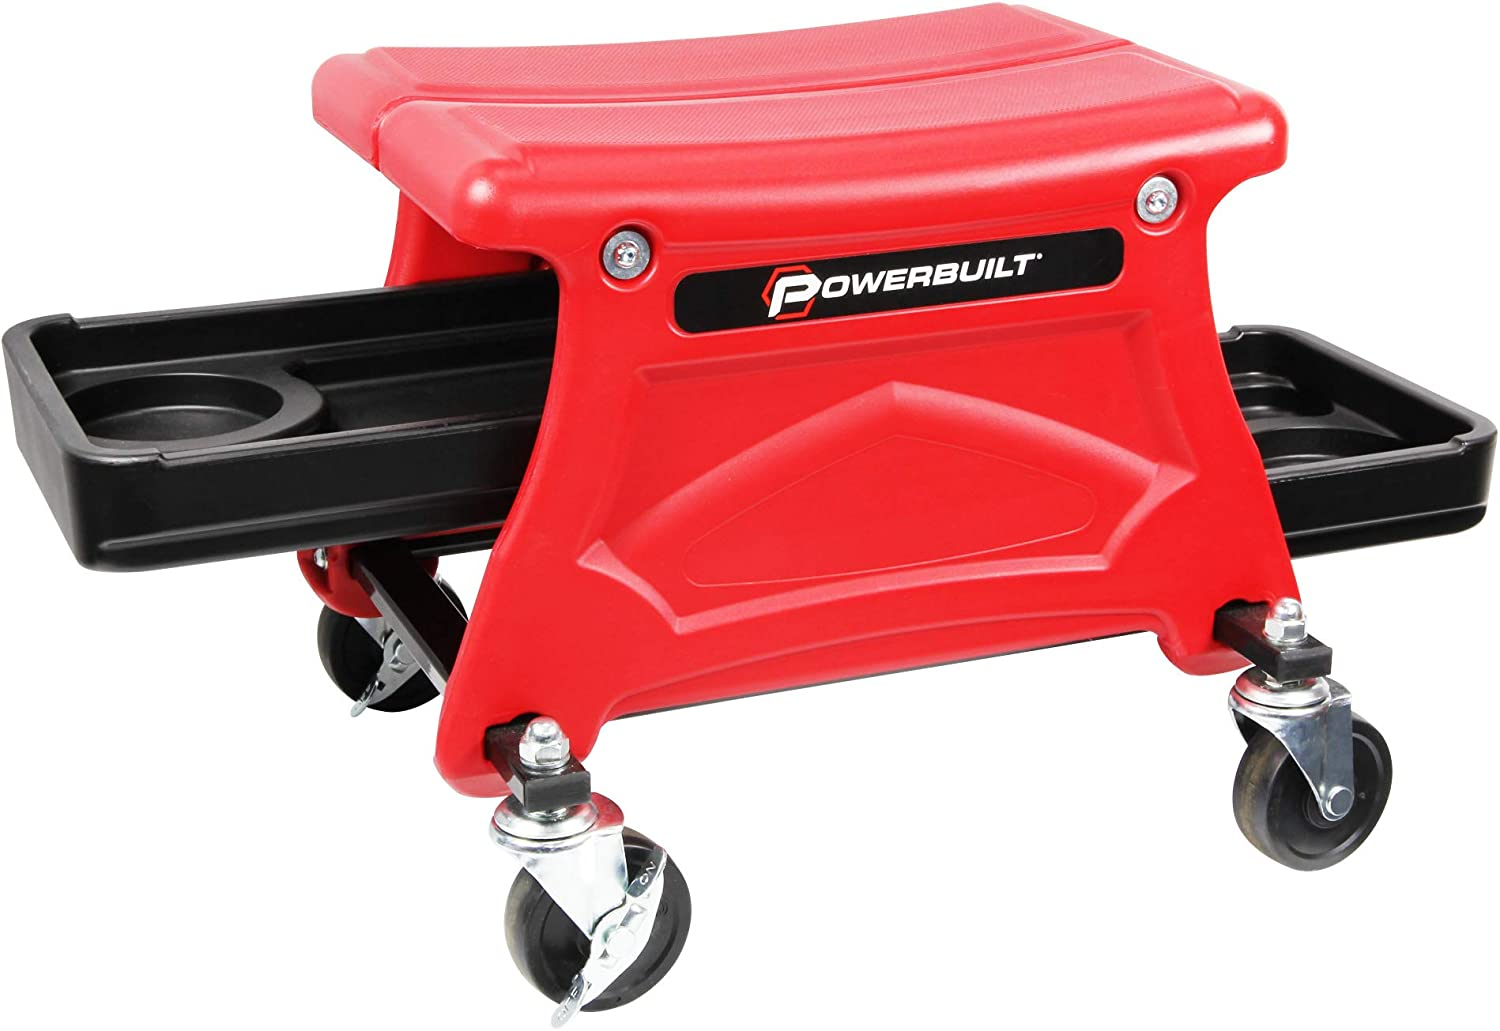 Powerbuilt Roller Seat with 2 Slide-Out Tool and Beverage Trays for Garage Smooth Rolling Ball Bearing Casters 300 lb Capacity for Brake Jobs, Detailing, Cleaning, Motorcycle, Gardening - 240283 : Automotive